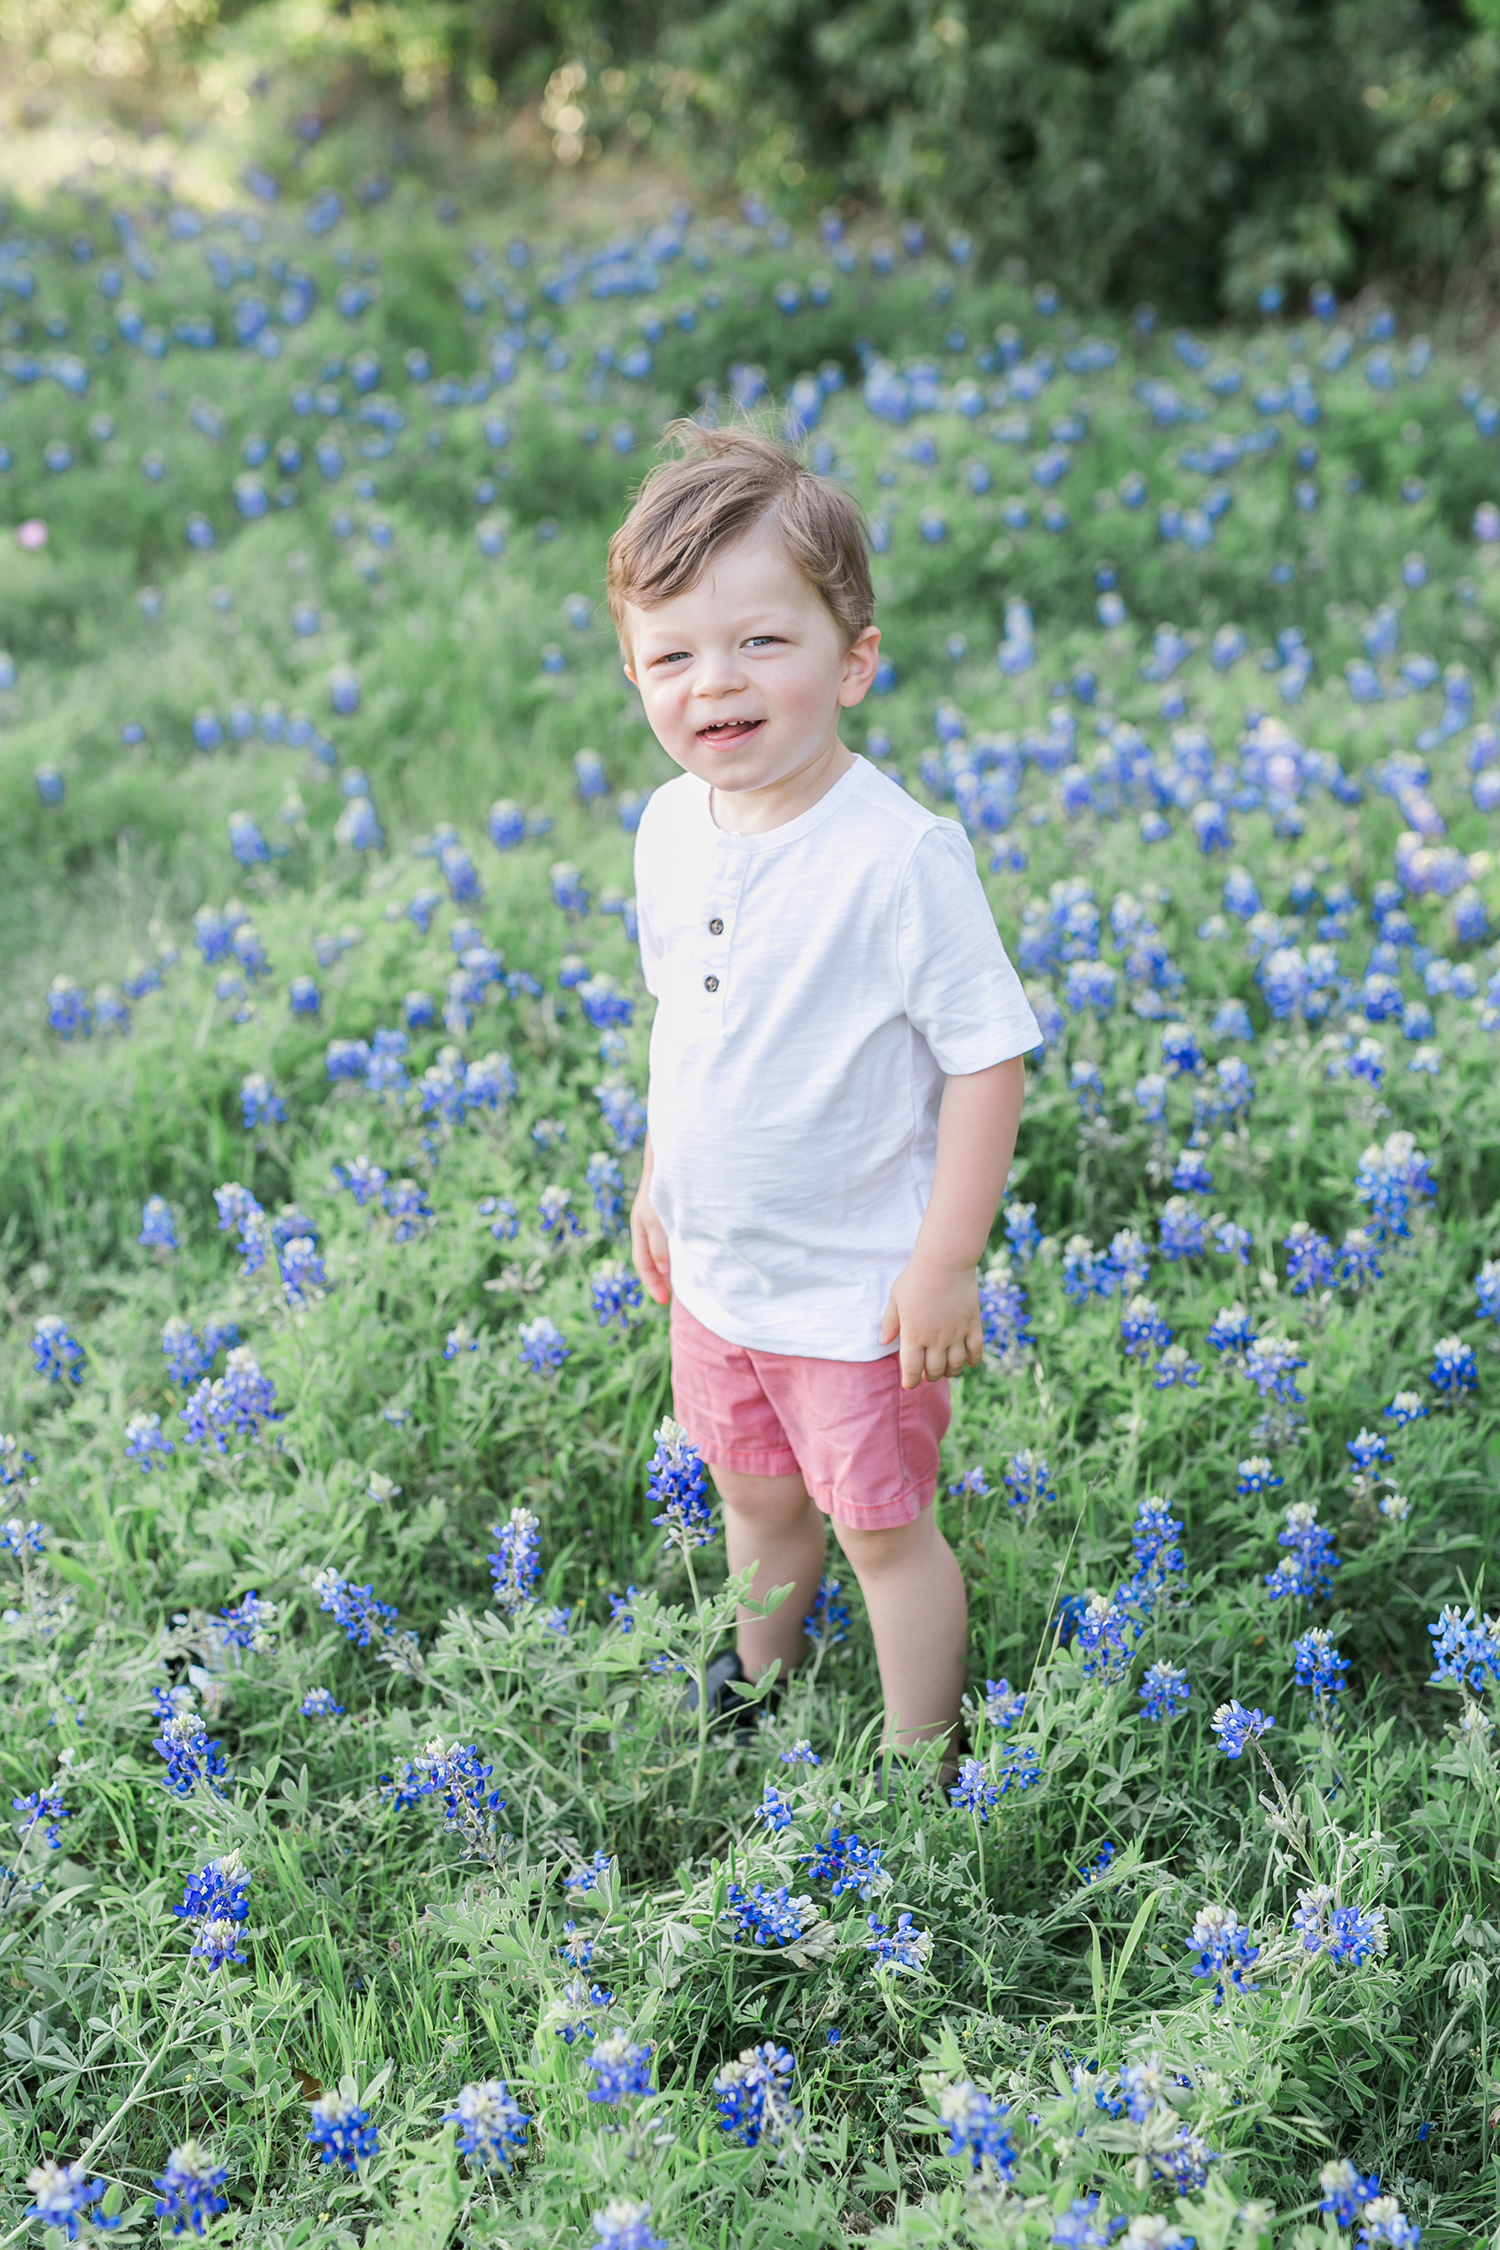 austin-bluebonnet-wildflower-photographer-mini-portraits-06.jpg